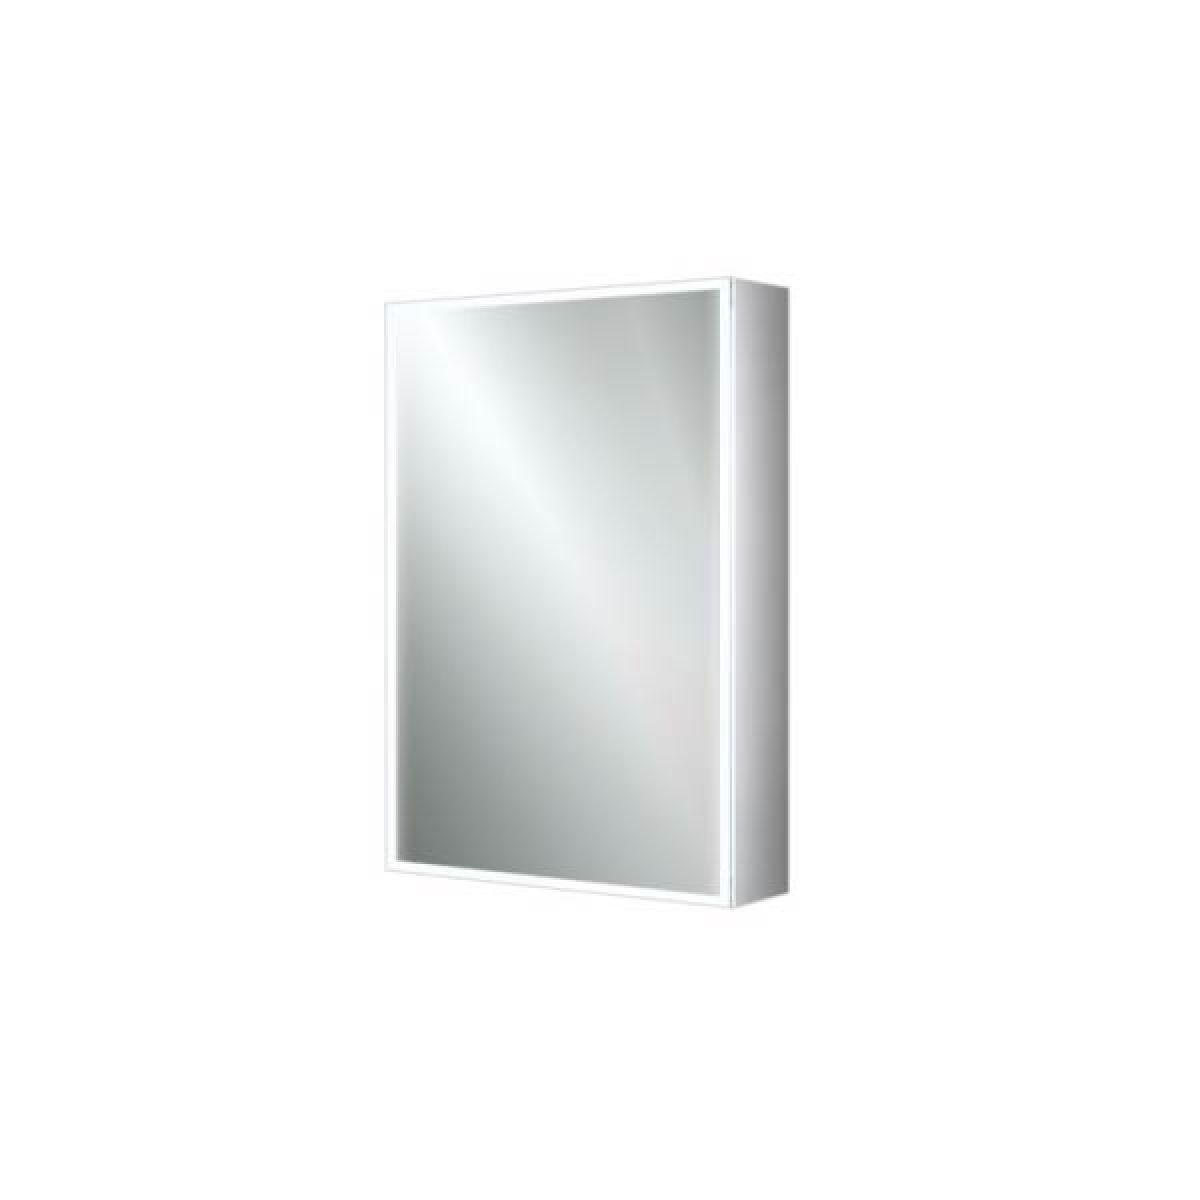 HiB Qubic 50 LED Single Door Cabinet